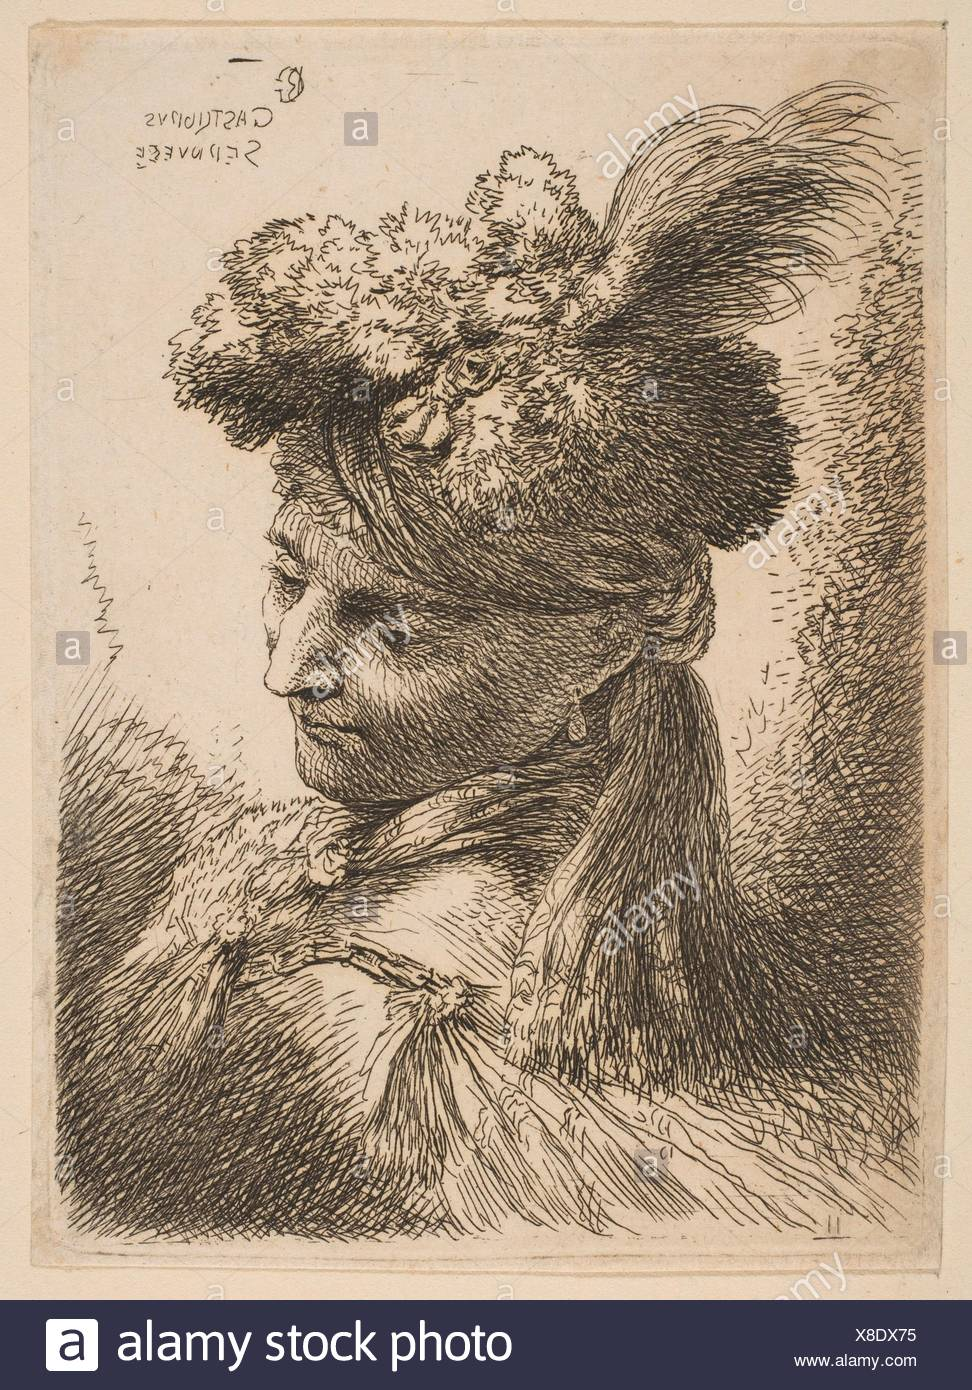 Young Man Facing Three Quarters Right Wearing a Fur Headdress With a Plume, Jewel and a Headband. Artist: Giovanni Benedetto Castiglione (Il - Stock Image